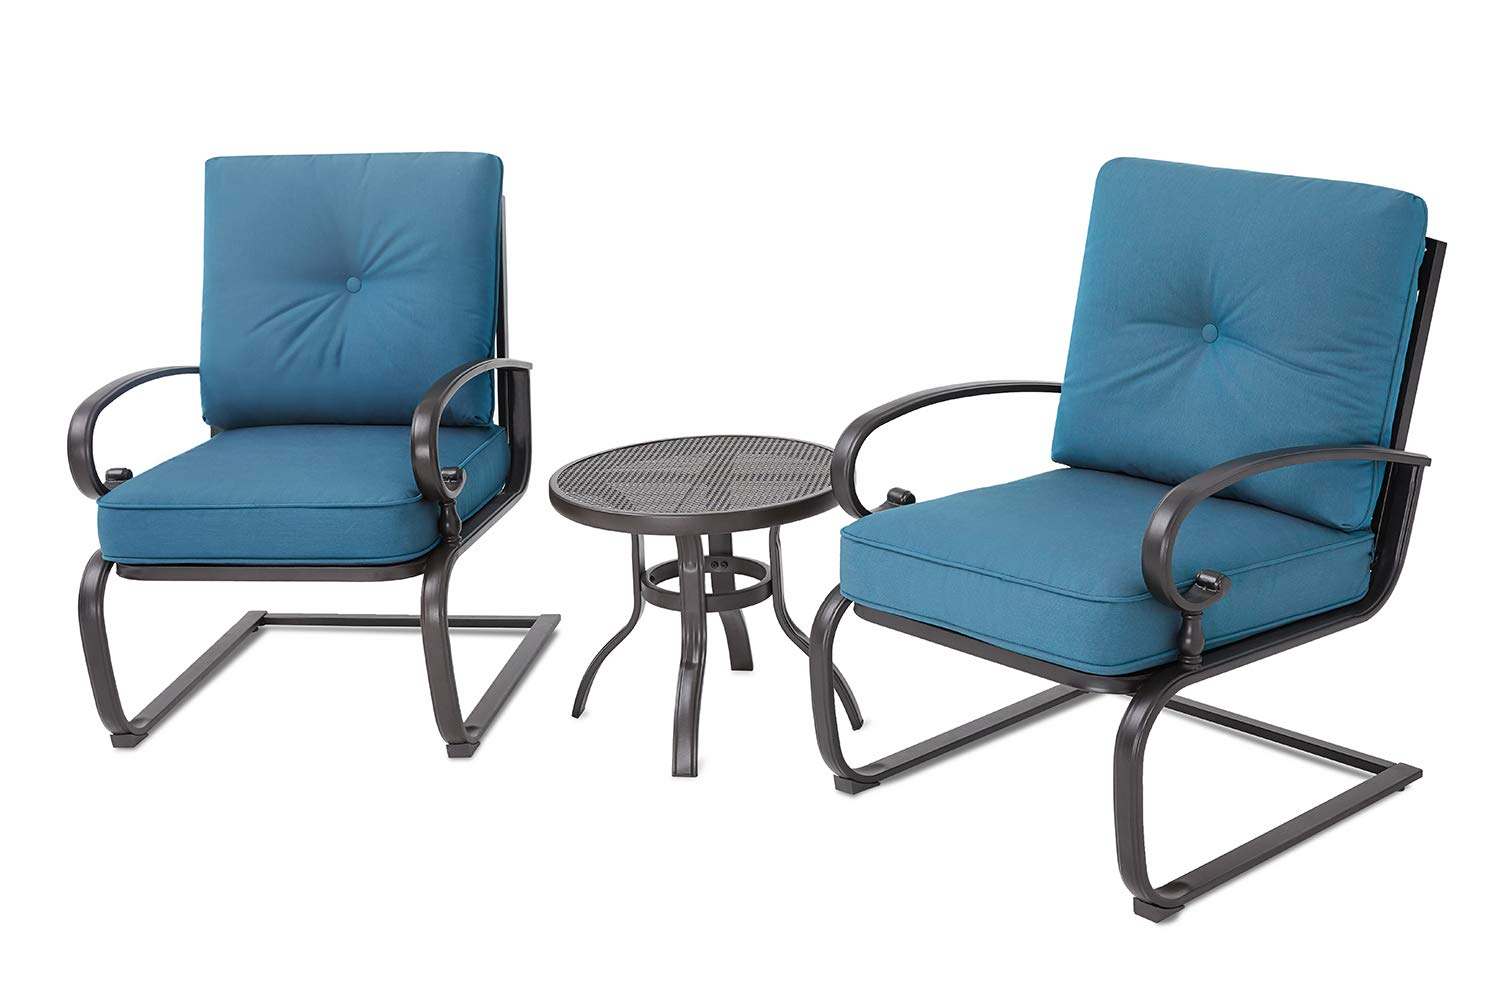 Incbruce Outdoor Bistro Set 3-Piece Spring Metal Lounge Cushioned Chairs and Bistro Table Set|Wrought Iron Cafe Furniture Seat,Peacock Blue